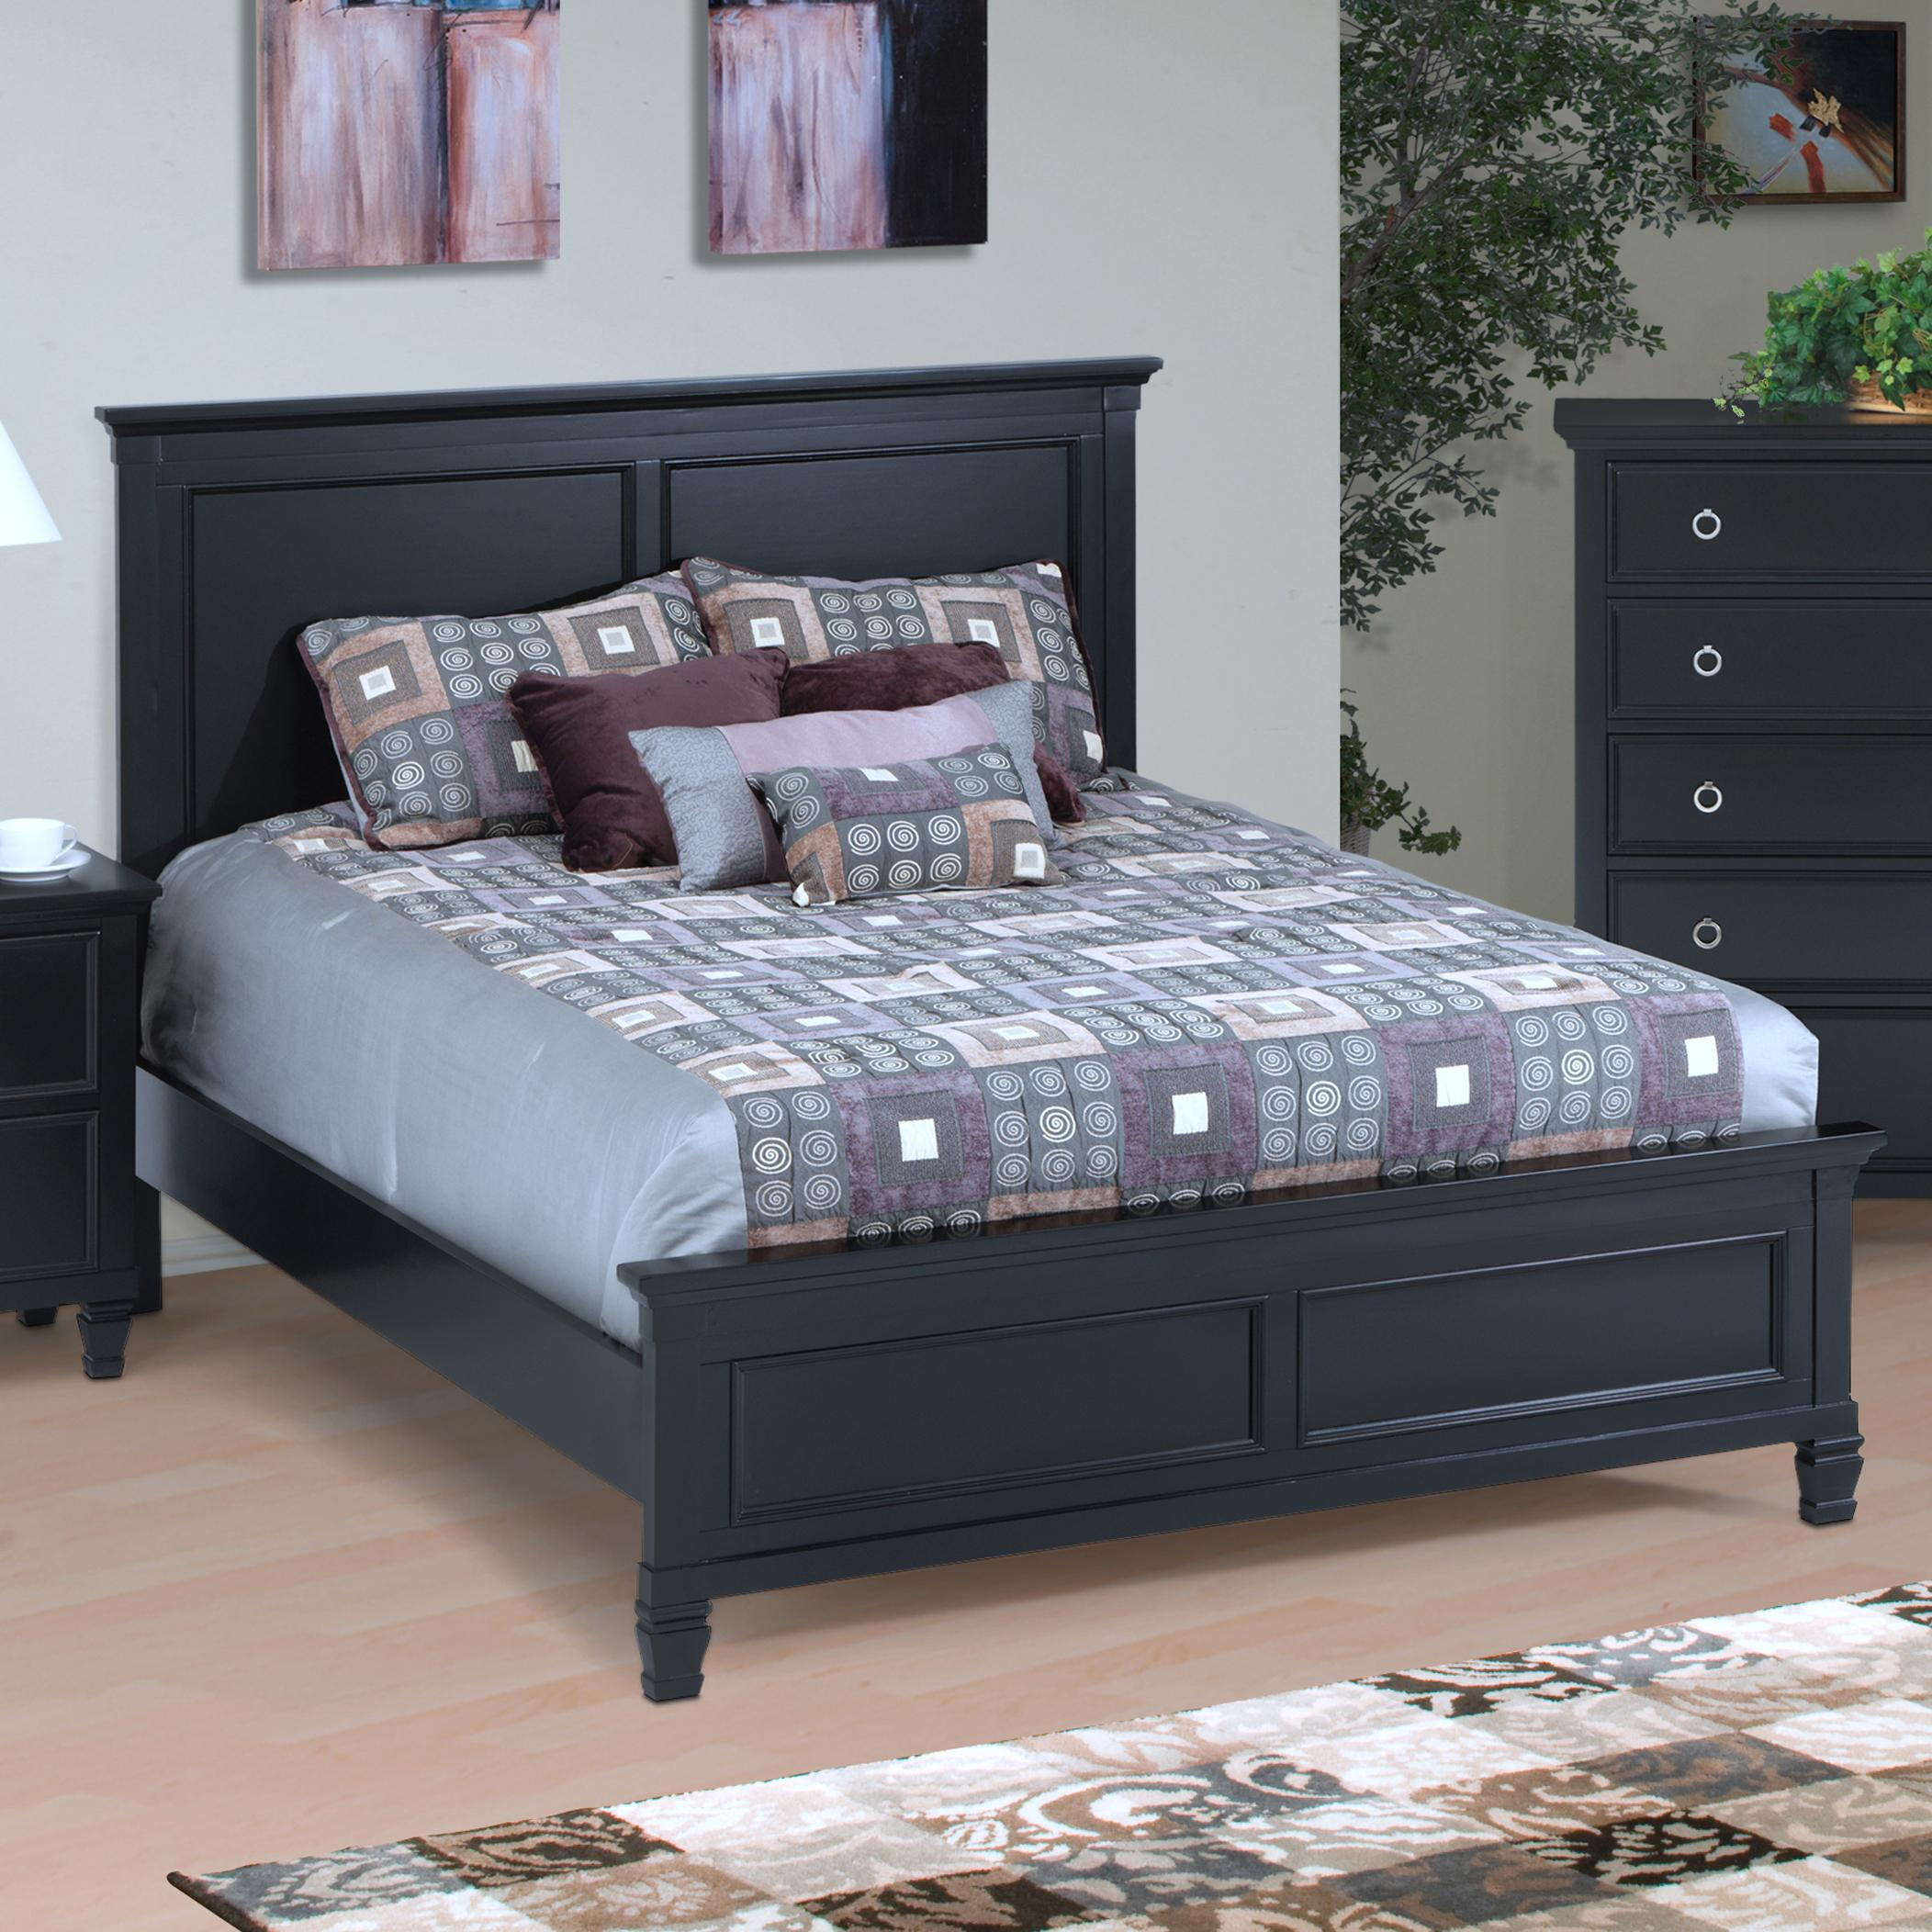 Tamarack Full Panel Bed by New Classic at Beck's Furniture